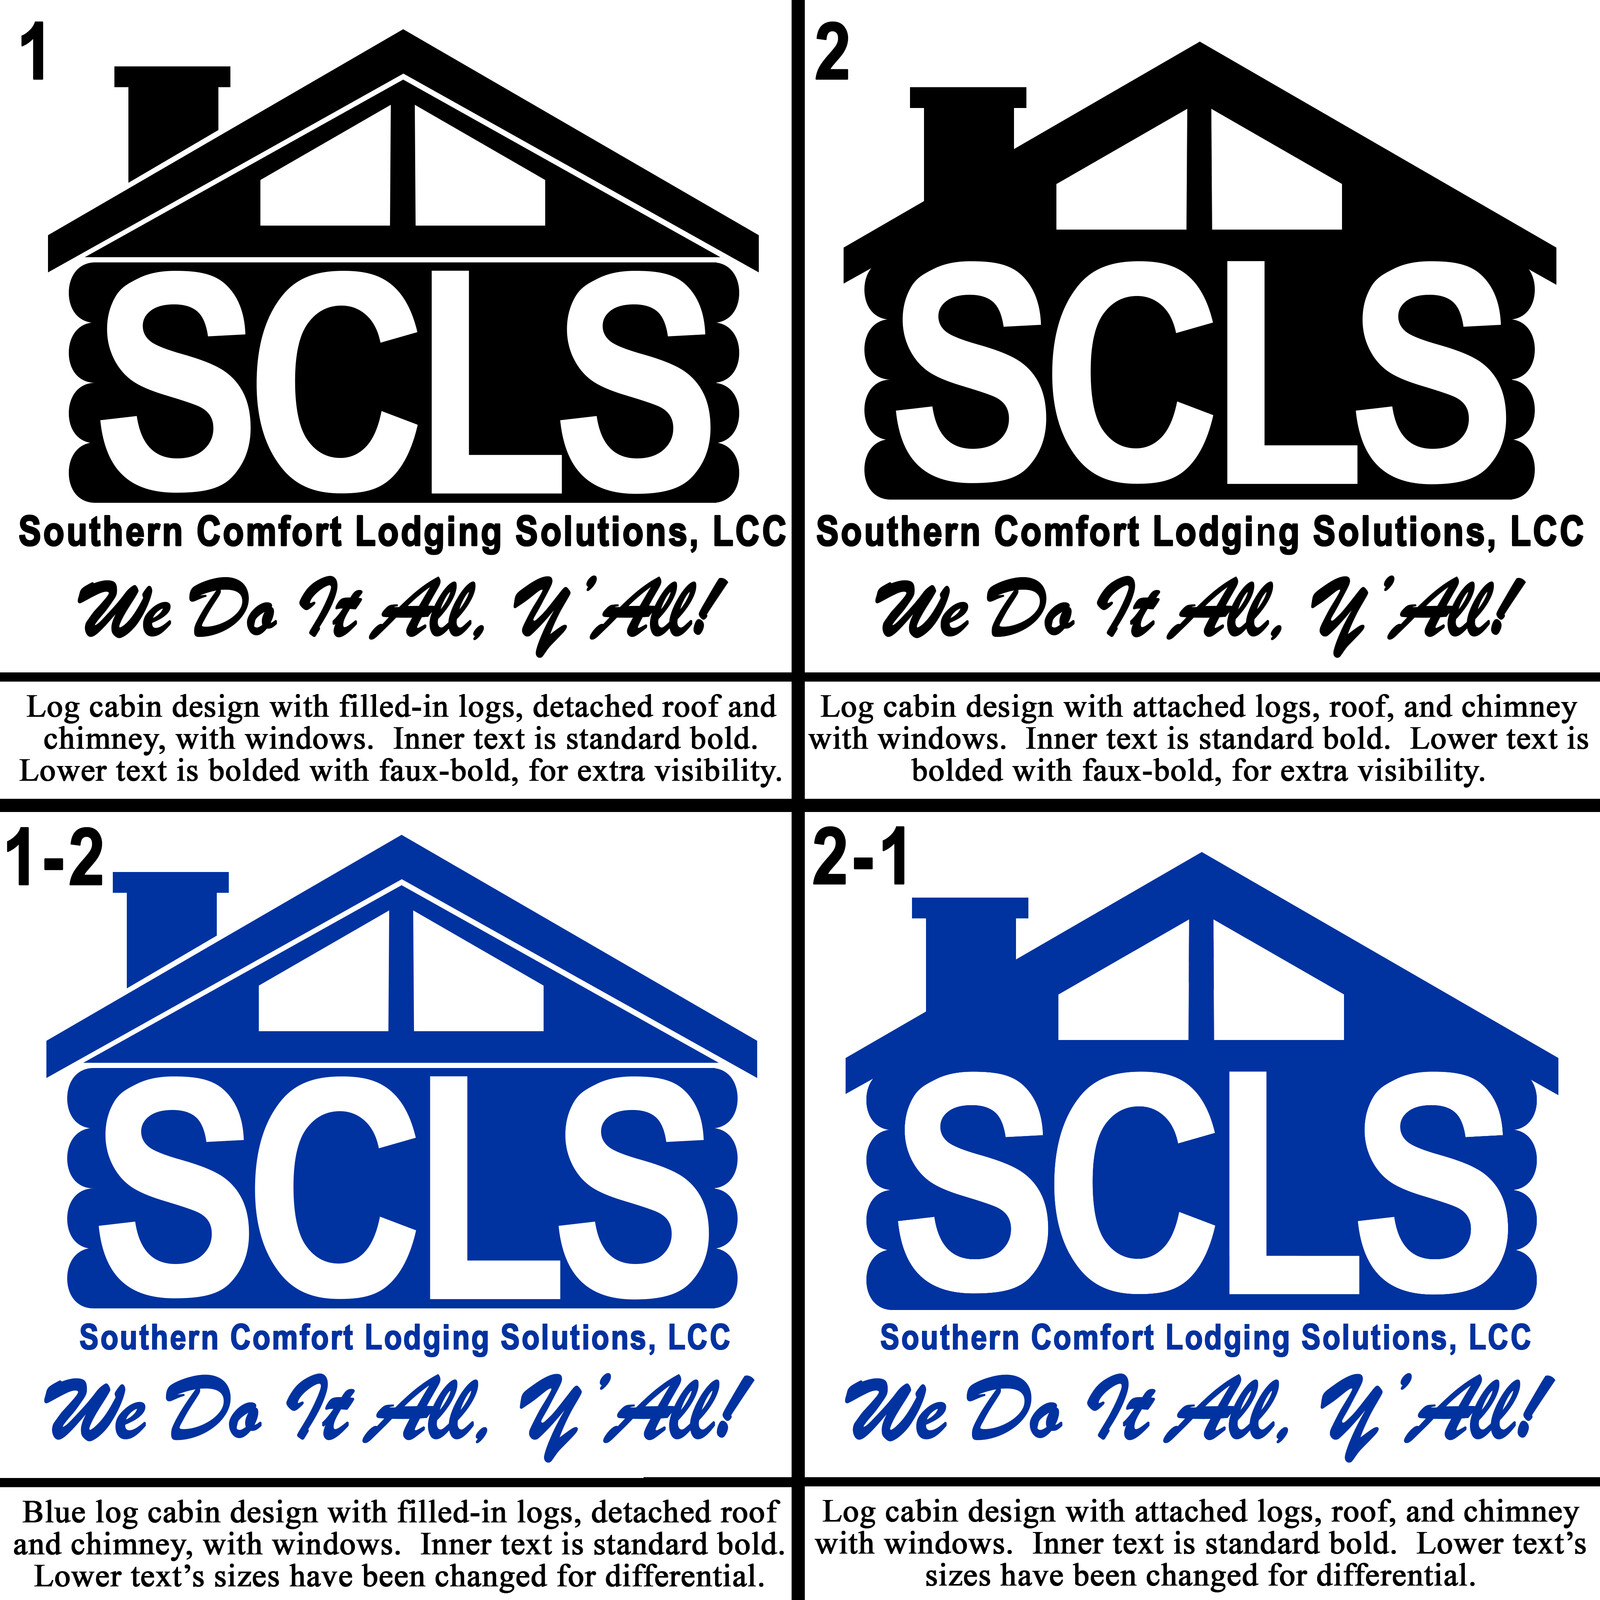 The second 4 concept designs for the SCLS logo